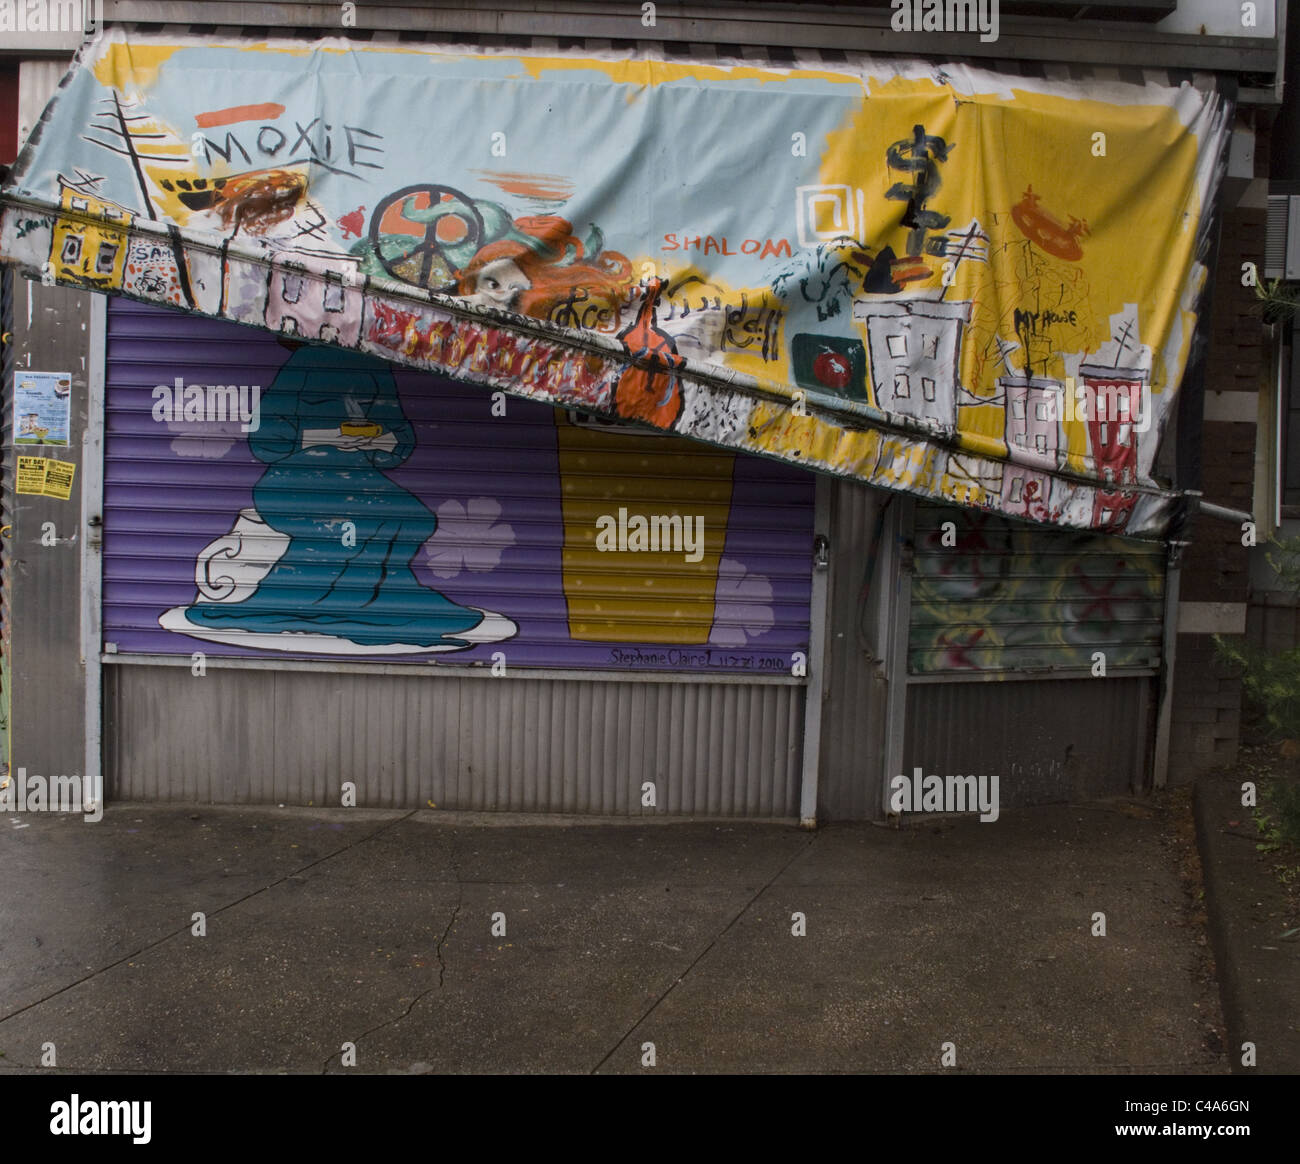 Damaged awning on a shuttered storefront in Brooklyn, NY. - Stock Image